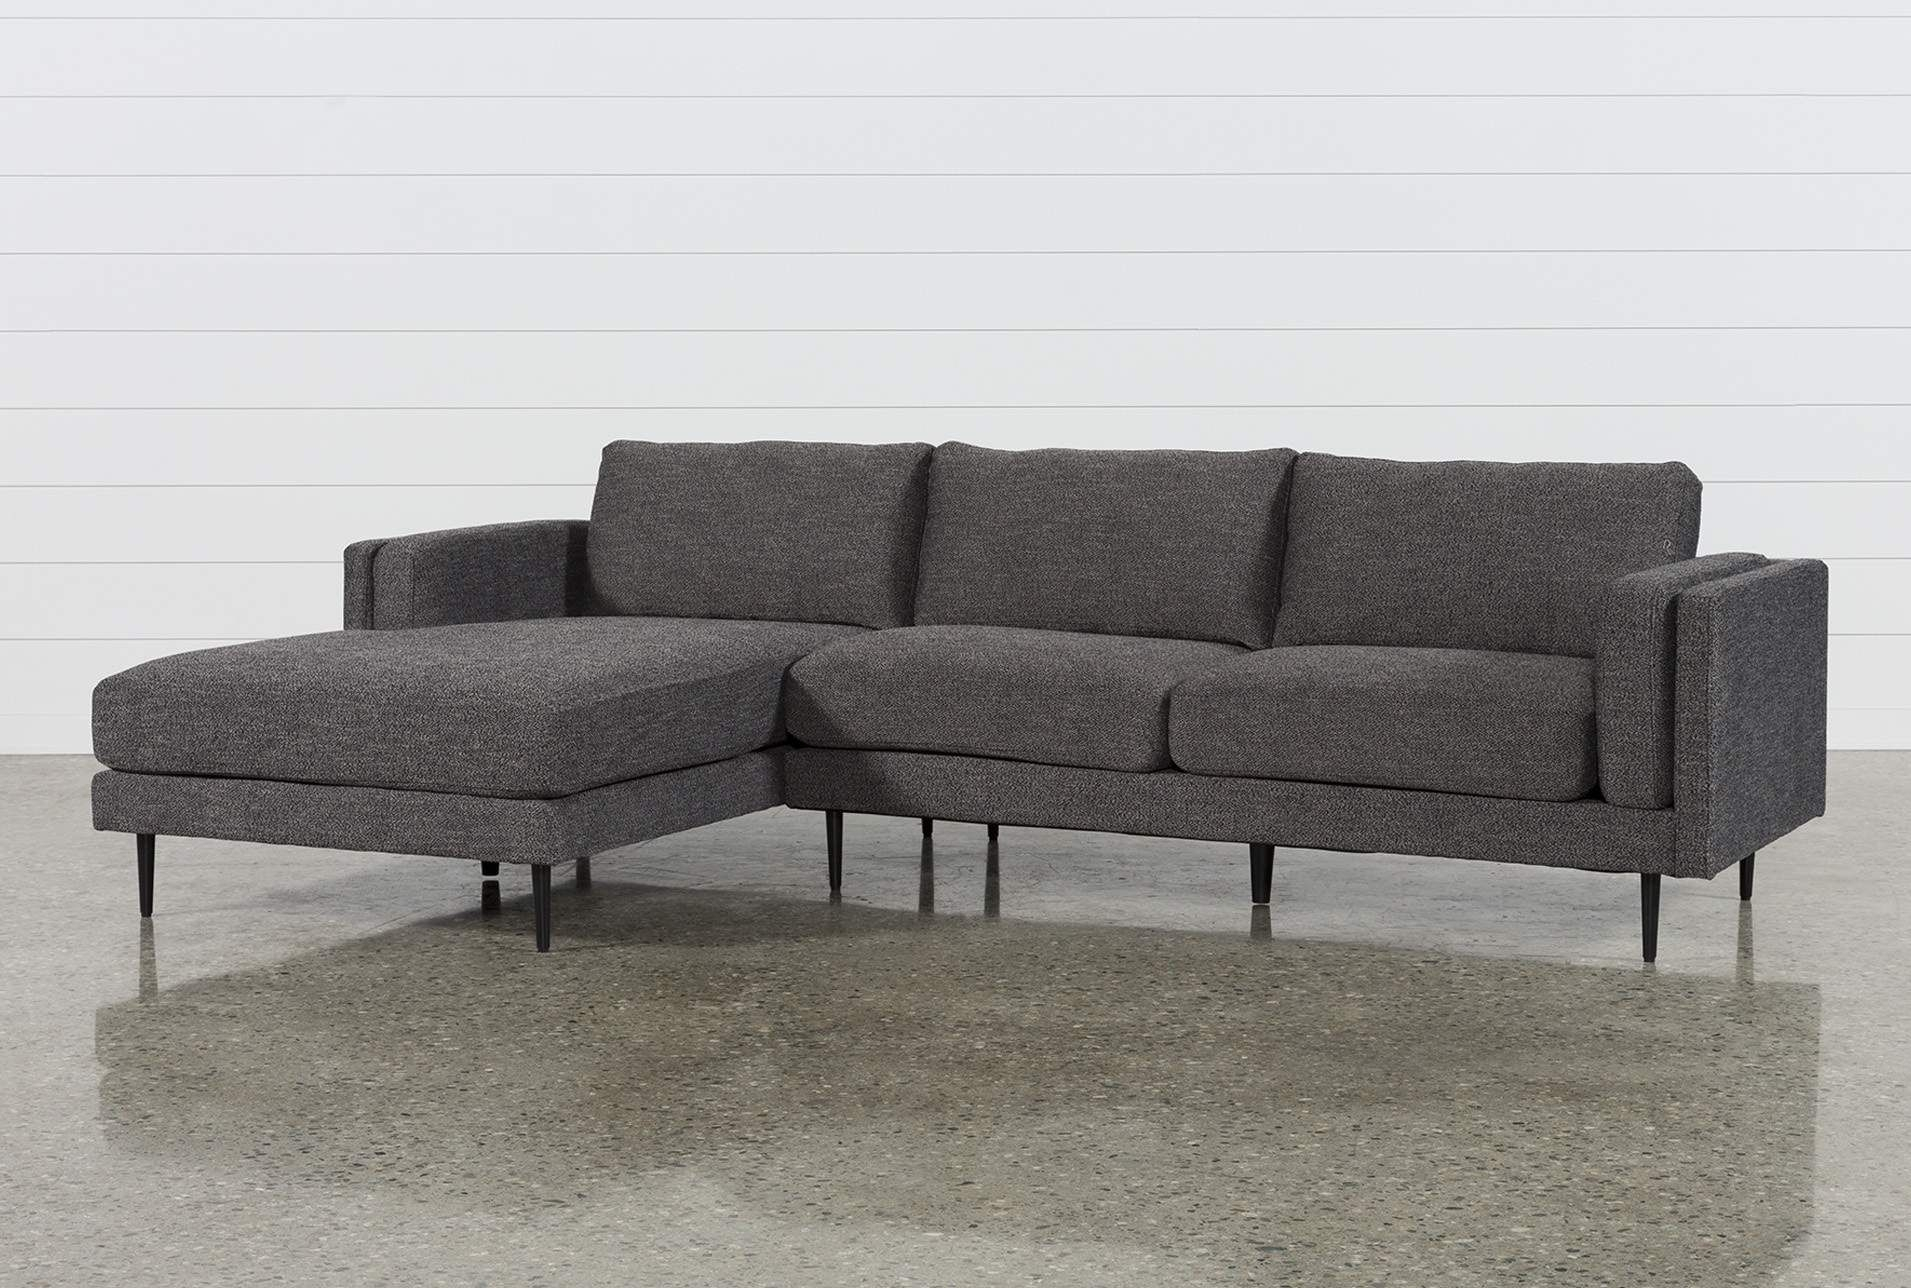 Aquarius Dark Grey 2 Piece Sectional W/laf Chaise | Pinterest In Aquarius Light Grey 2 Piece Sectionals With Raf Chaise (Image 4 of 25)